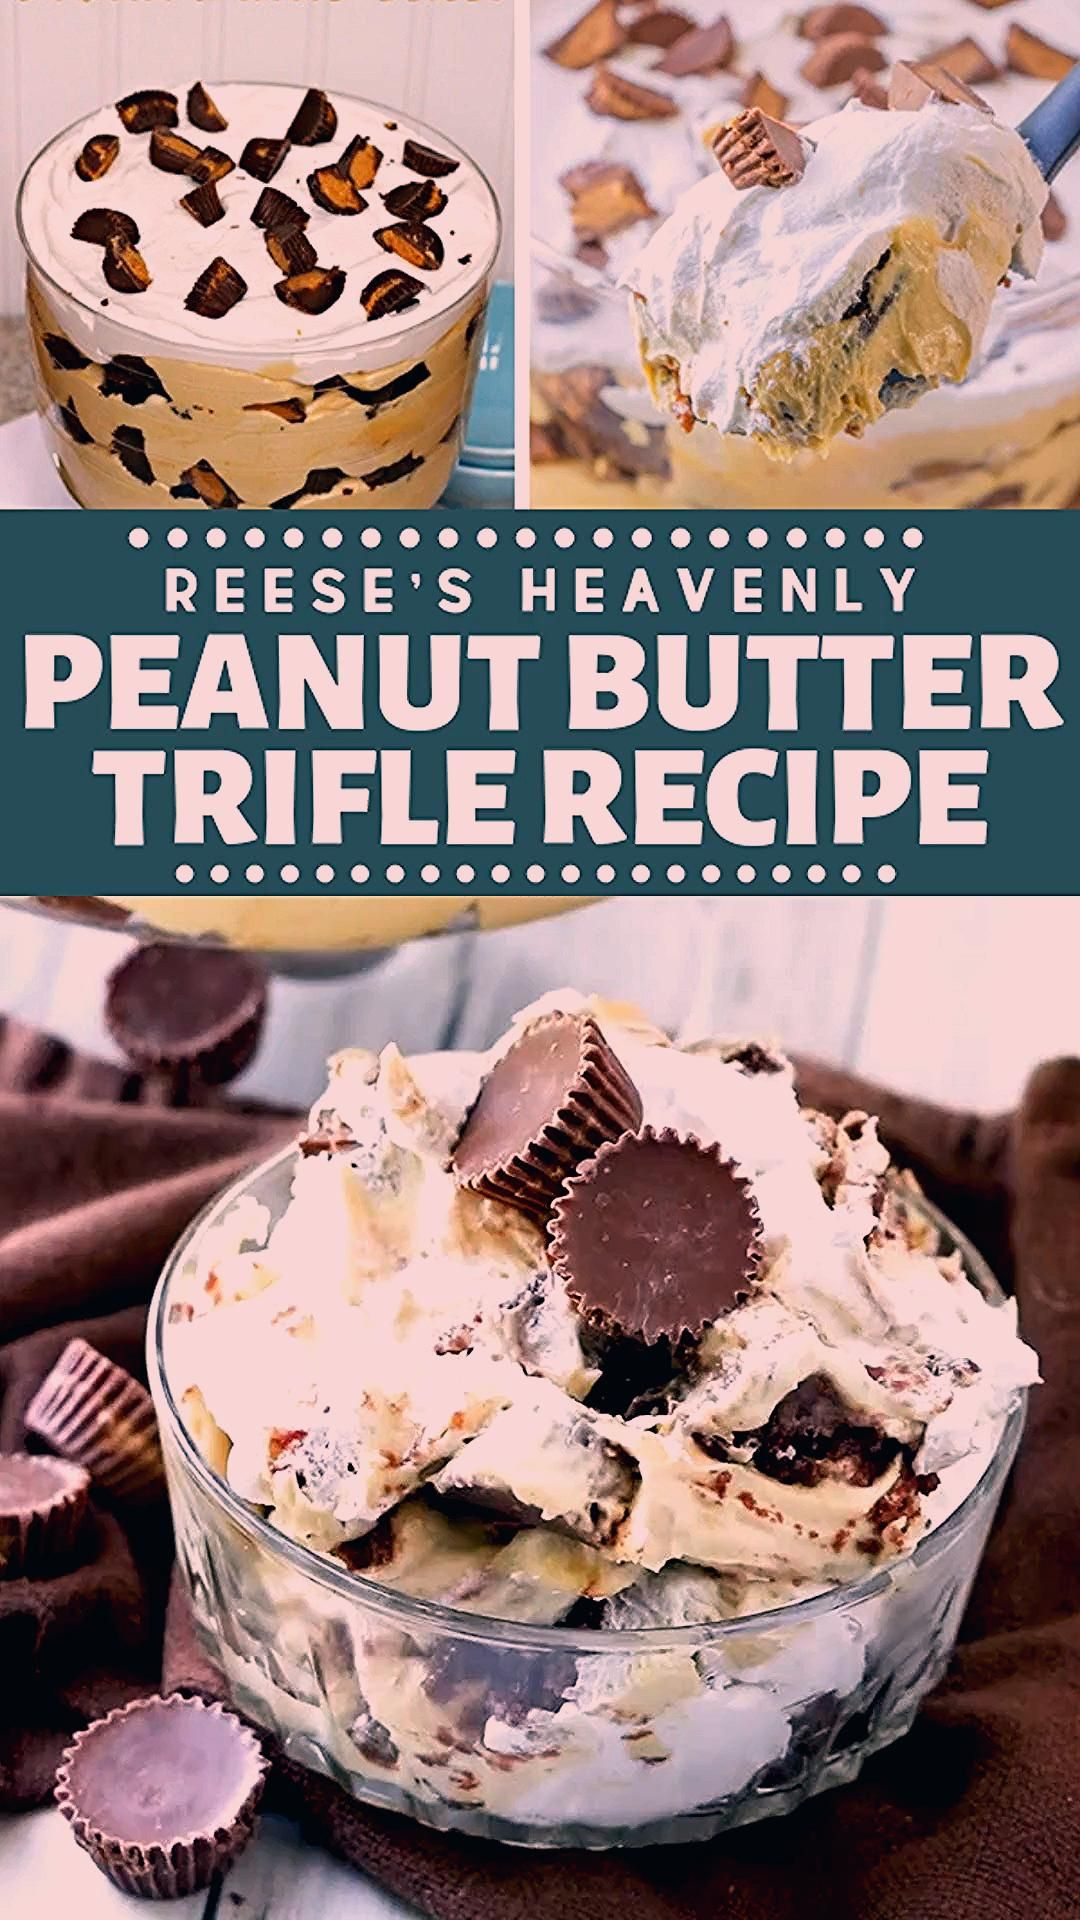 Photo of Reese's Heavenly Peanut Butter Trifle Recipe